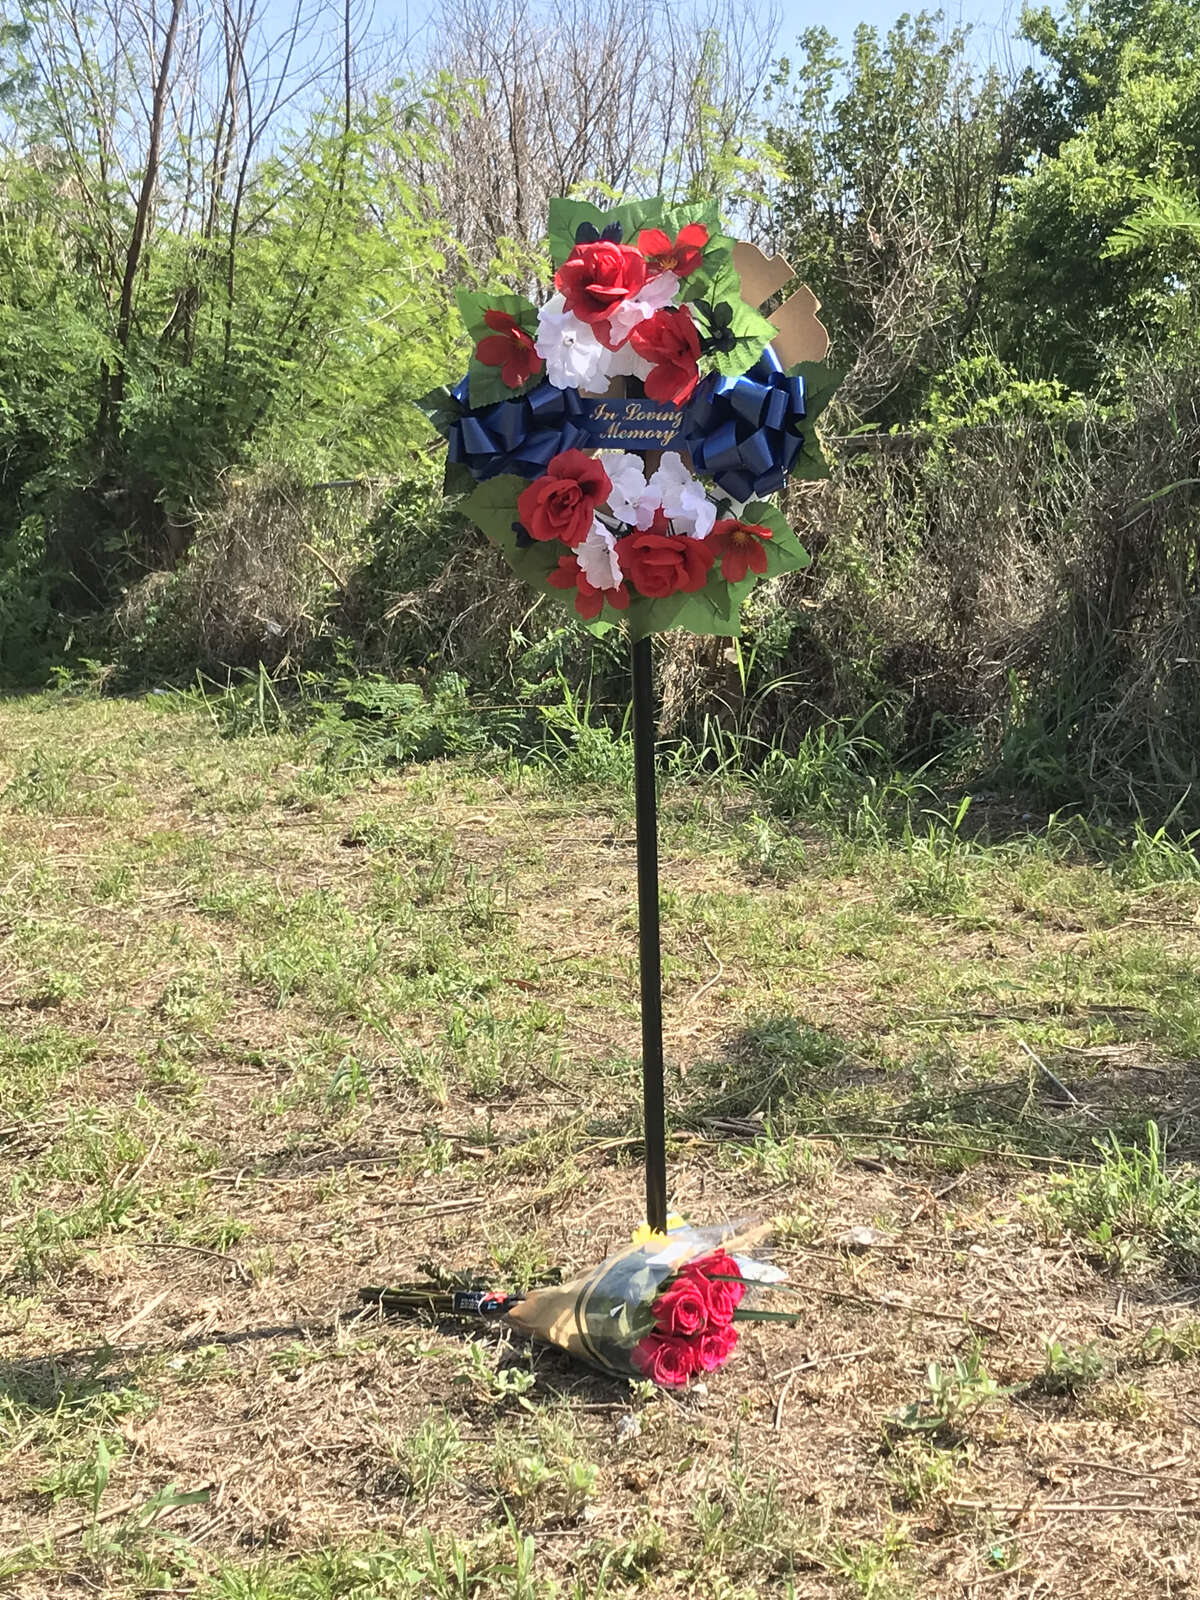 Neighbors placed a wreath in a vacant lot on Avenue L where 18-year-old Luis Argueta was shot by a Galveston police officer following a traffic stop in the early-morning hours of June 25, 2018. Police have released few details about the shooting.